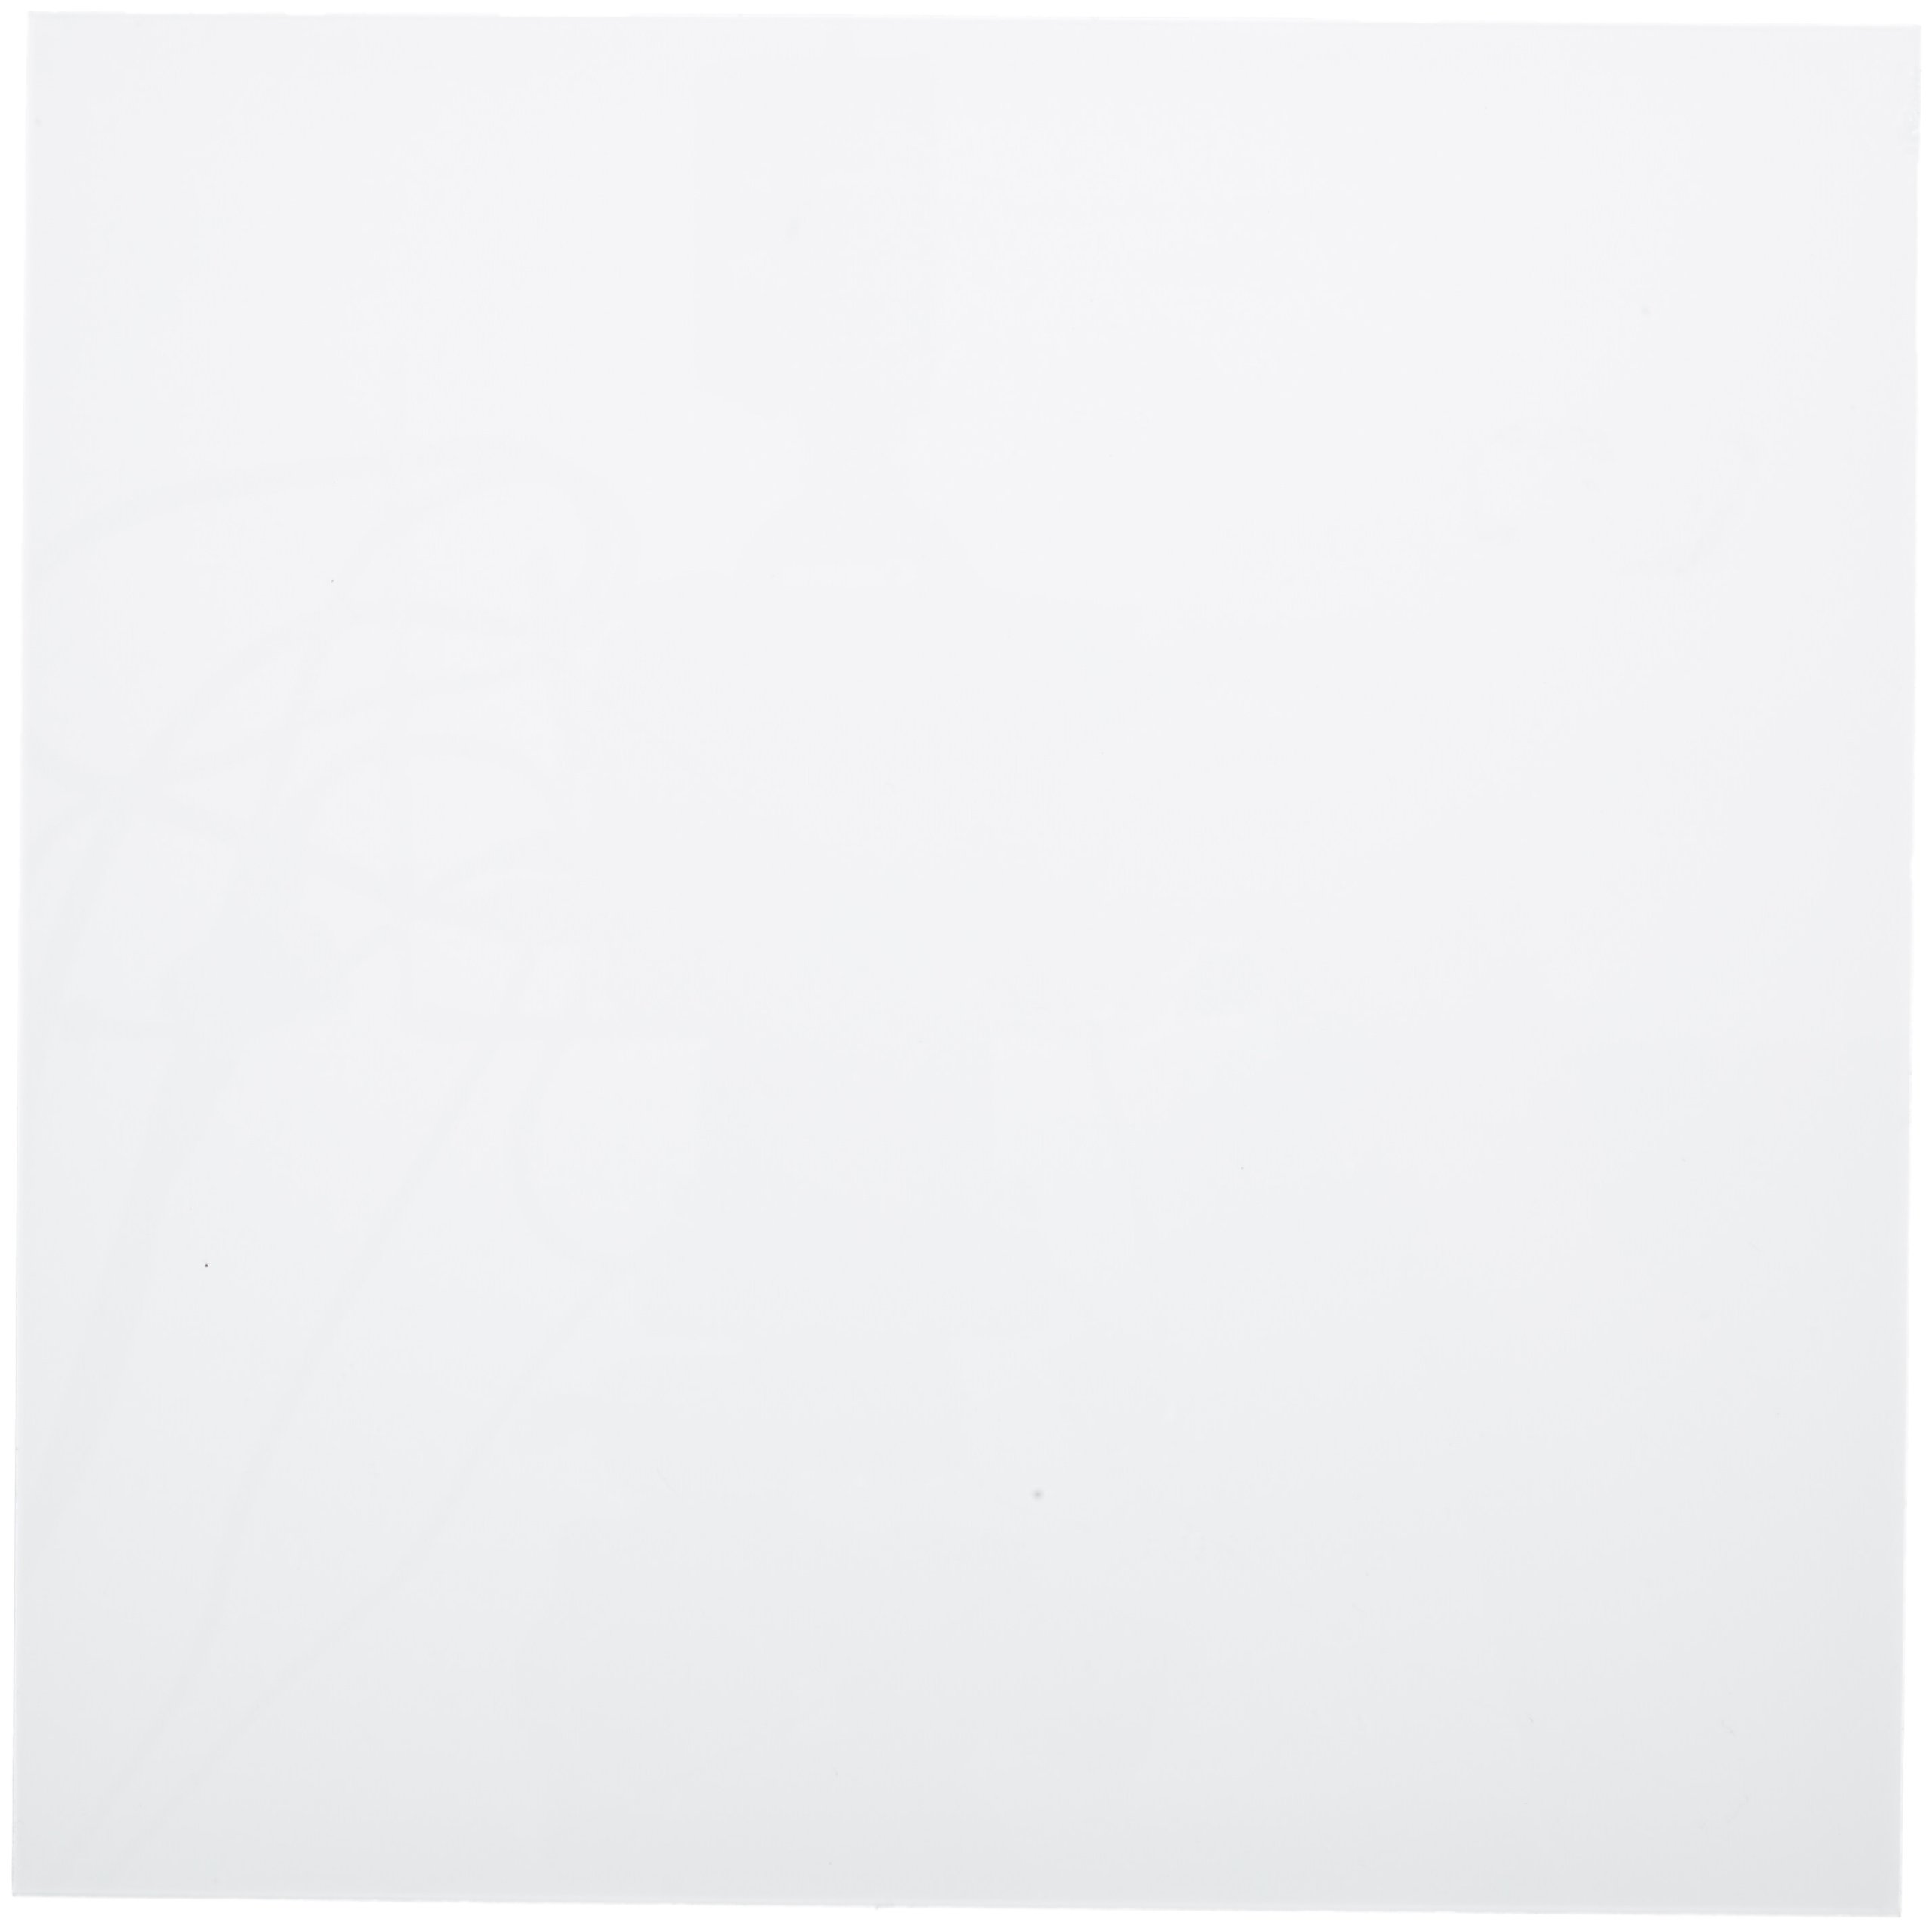 EMD Millipore 1.05721.0001 Glass Backed TLC Classical Silica Plate, 250µm Thick Silica Gel 60, 20cm Width, 20cm Length (Pack of 25)